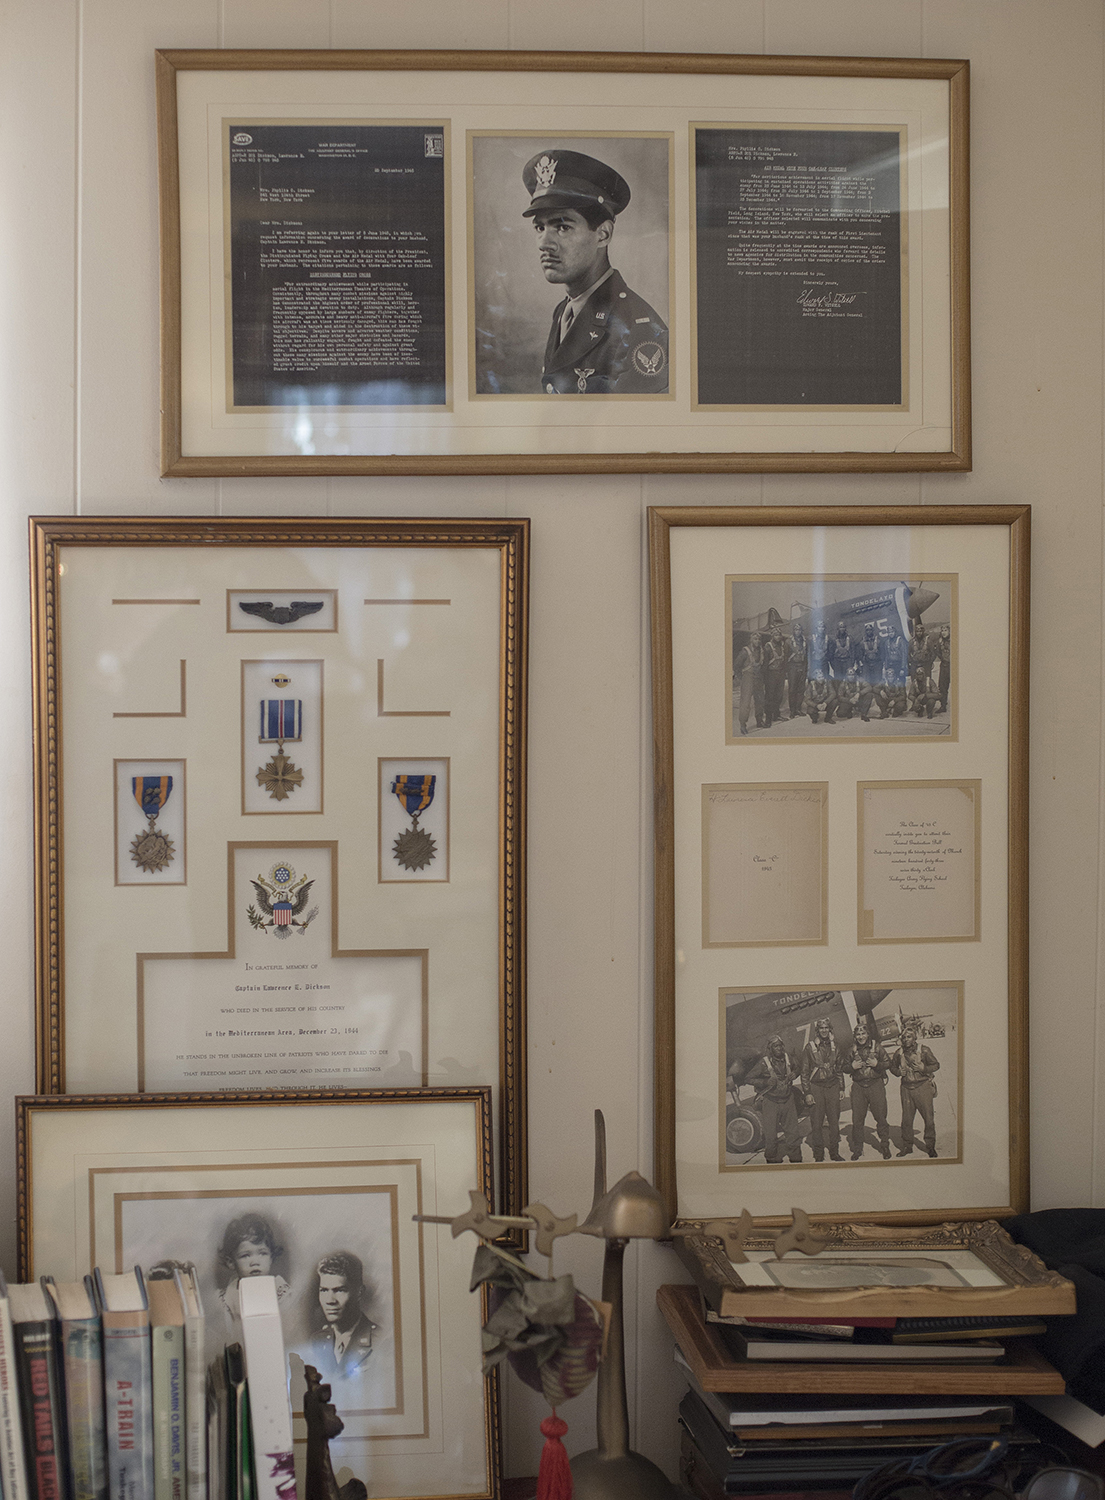 Photographs and medals belonging to Tuskegee Airman Capt. Lawrence E. Dickson, hanging in his daughters home. (Credit: Bryan Anselm/The Washington Post via Getty Images)